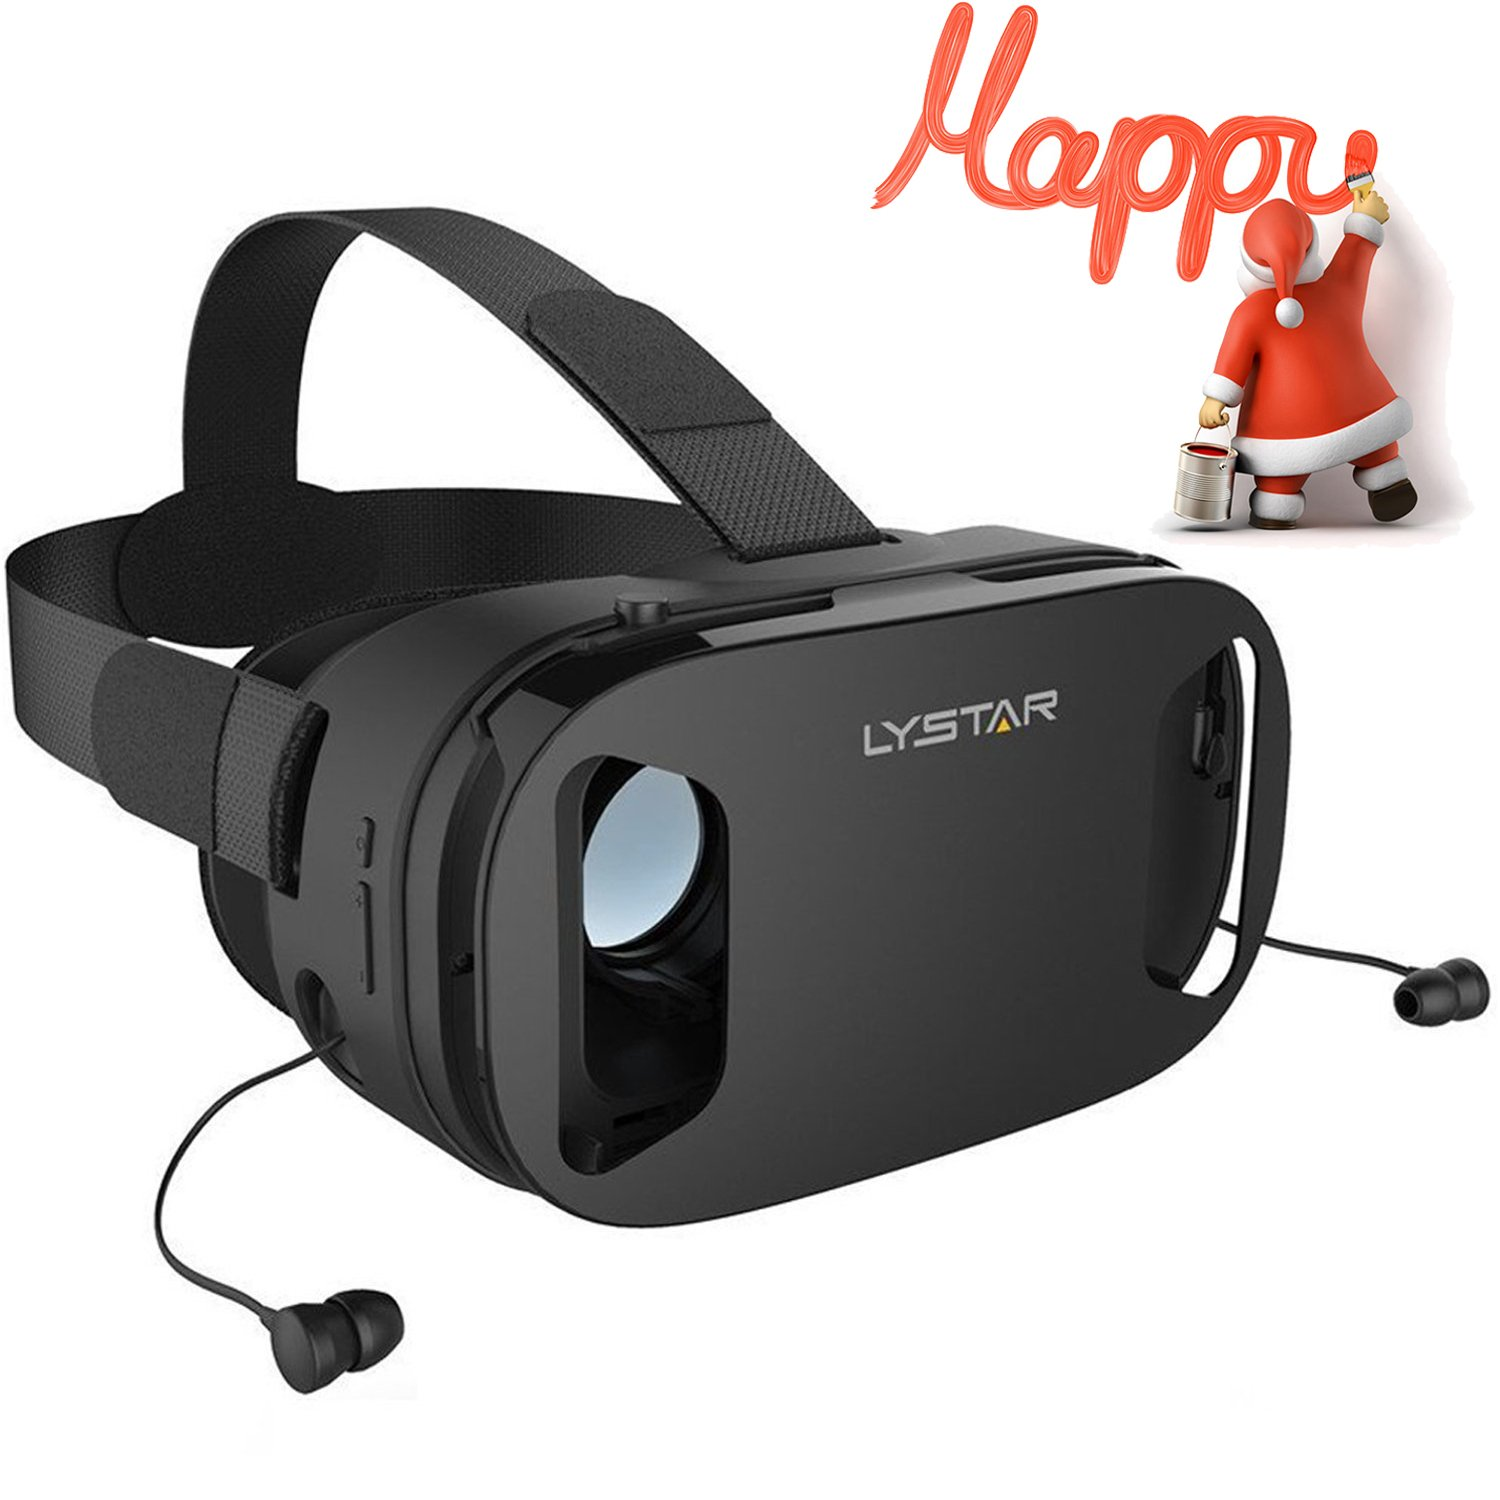 "3D VR Glasses W/Headphones Virtual Reality Headset for VR Games & 3D Movies by LyStar, VR Headset 3D Video Glasses for IOS & Android Smartphones Fit for 4.5""-6.0"", Touch Screen Button Trigger"